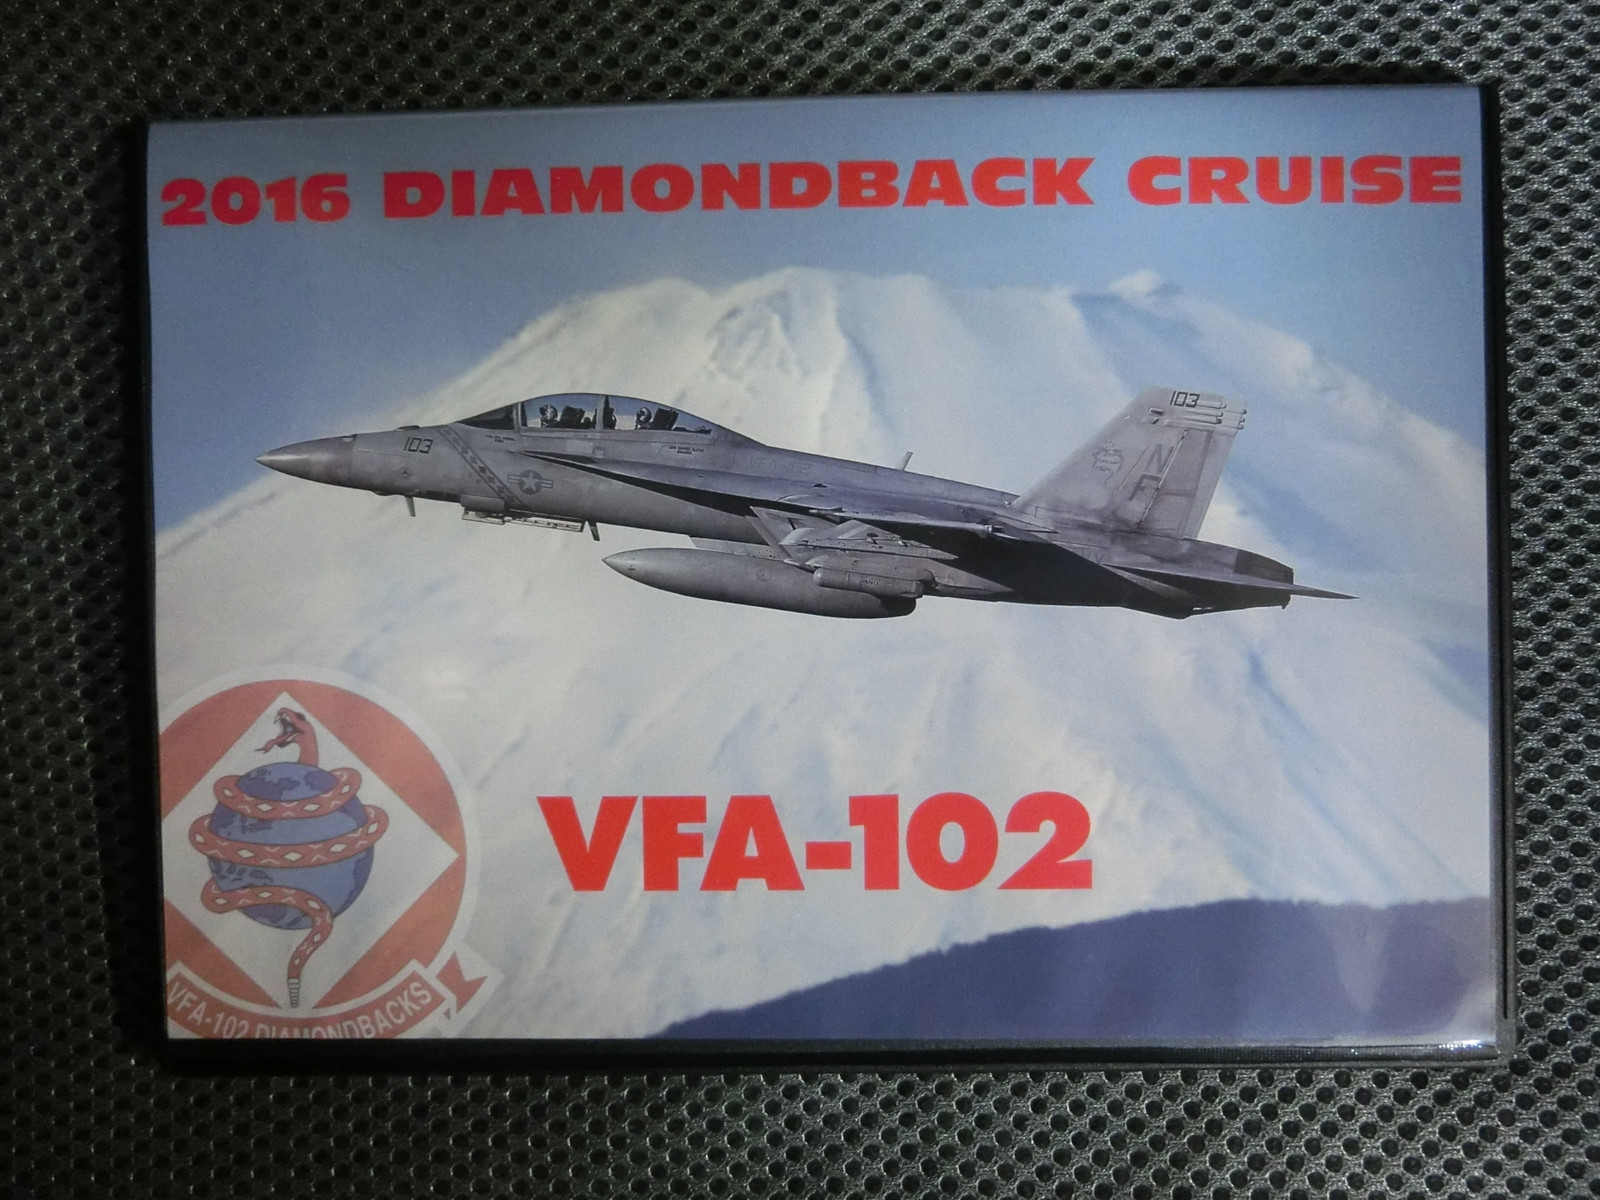 2016_diamondback_cruise_vfa102_1